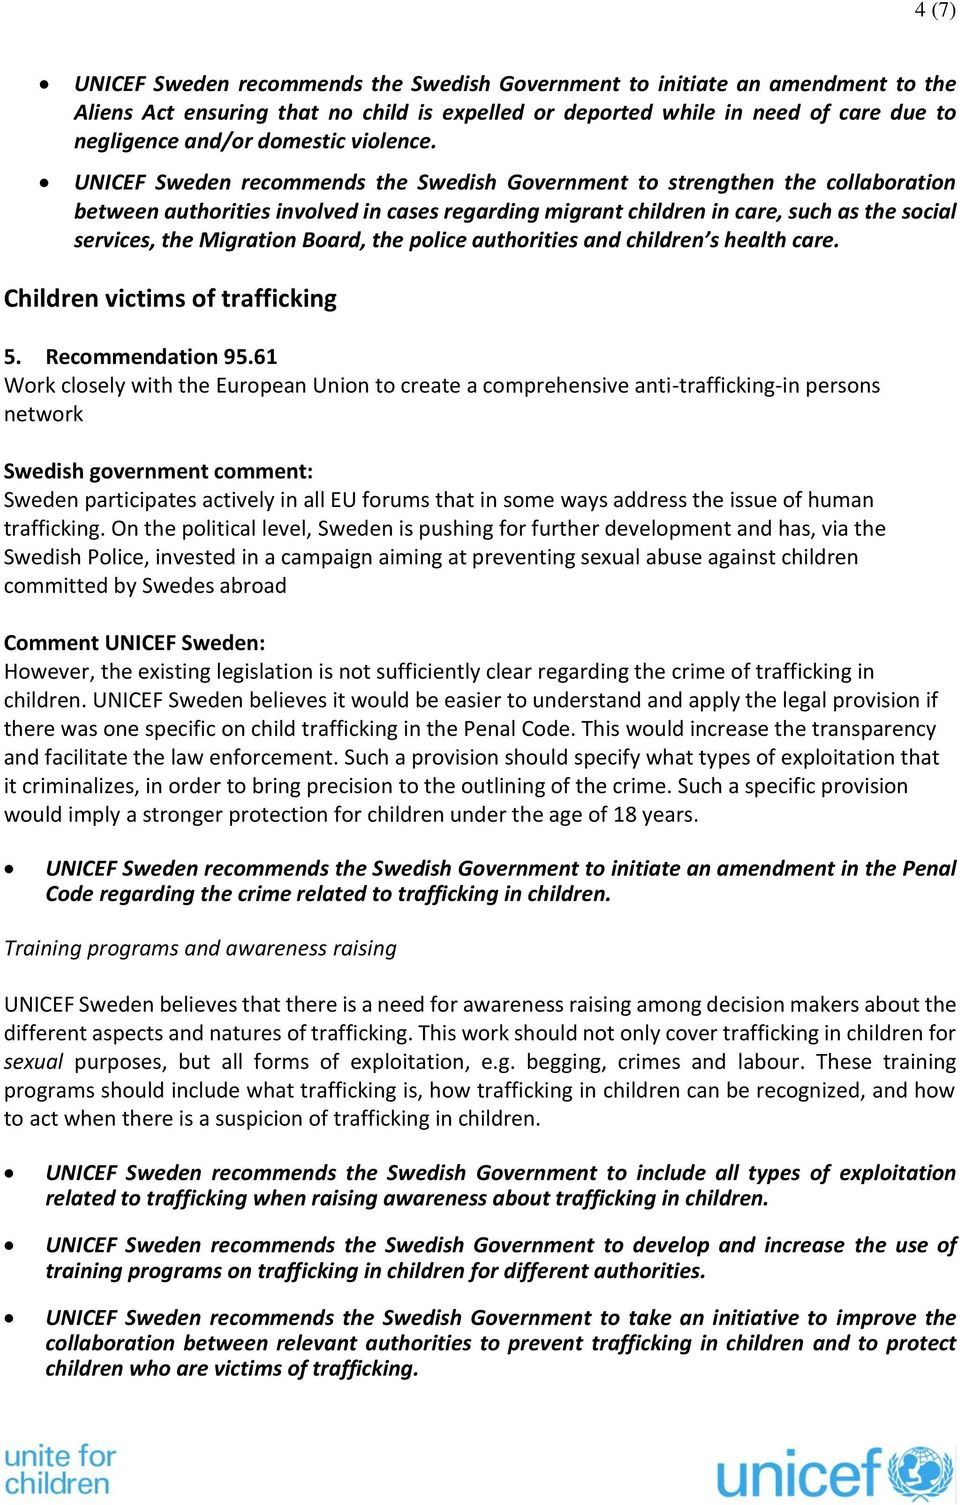 UNICEF Sweden recommends the Swedish Government to strengthen the collaboration between authorities involved in cases regarding migrant children in care, such as the social services, the Migration